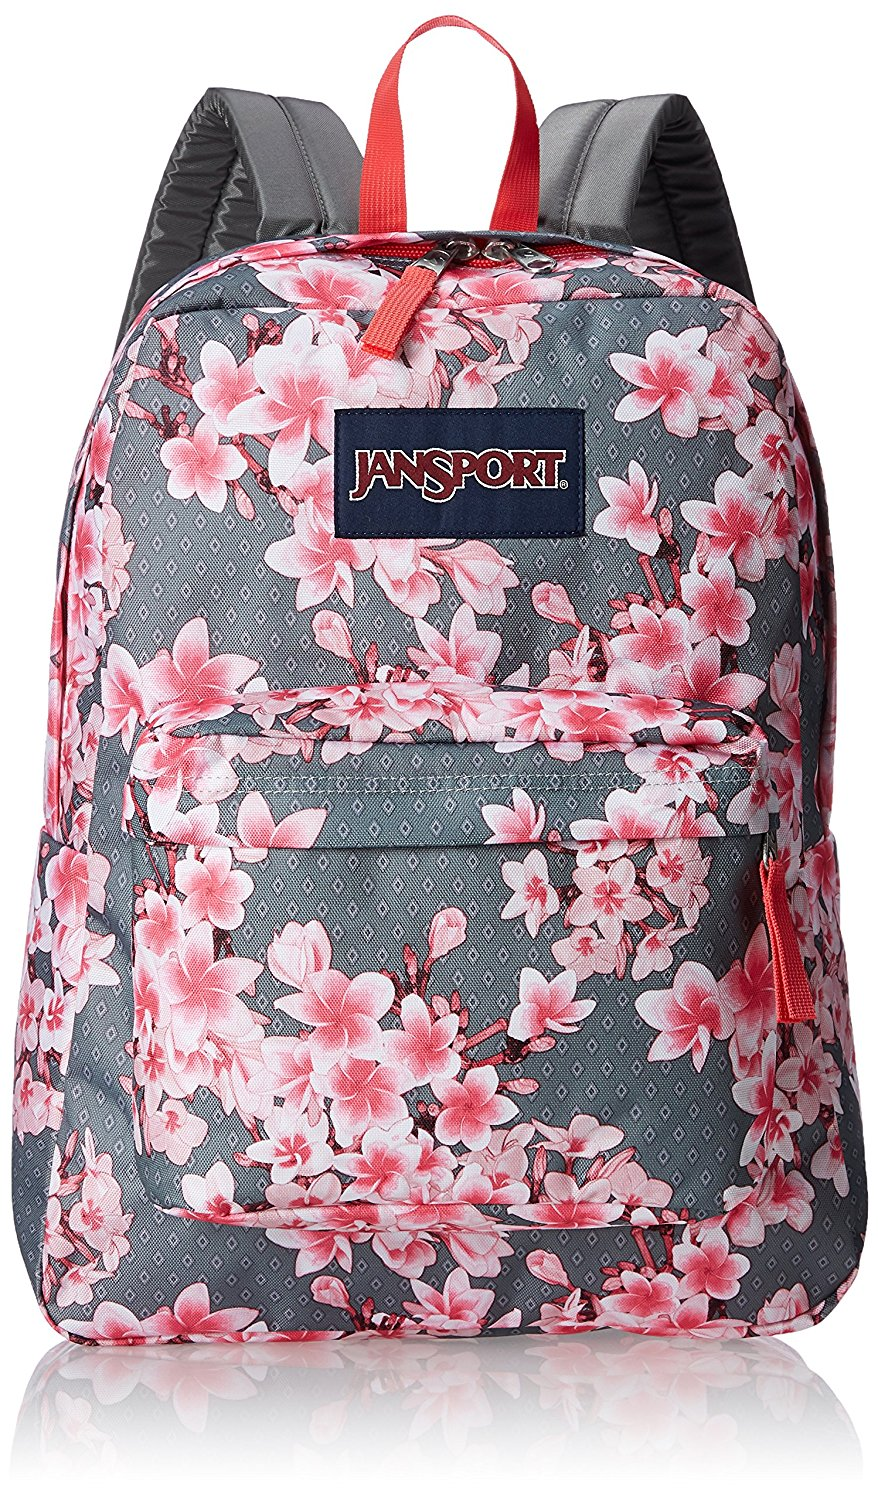 Jansport Backpack With Cats 211158c876b83